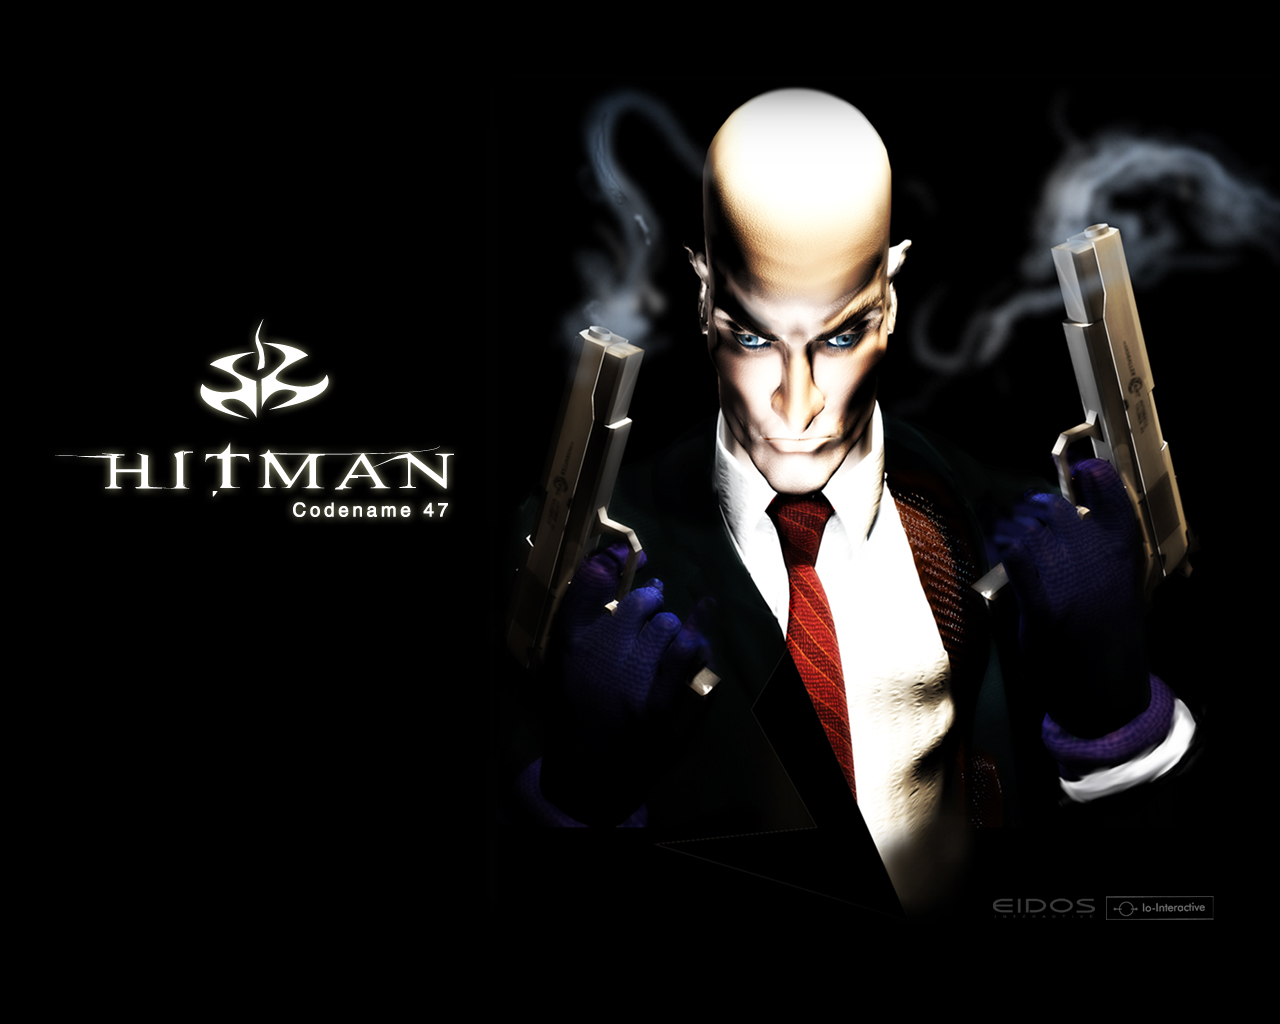 Best Game Wallpaper Best Hitman Wallpaper 1280x1024